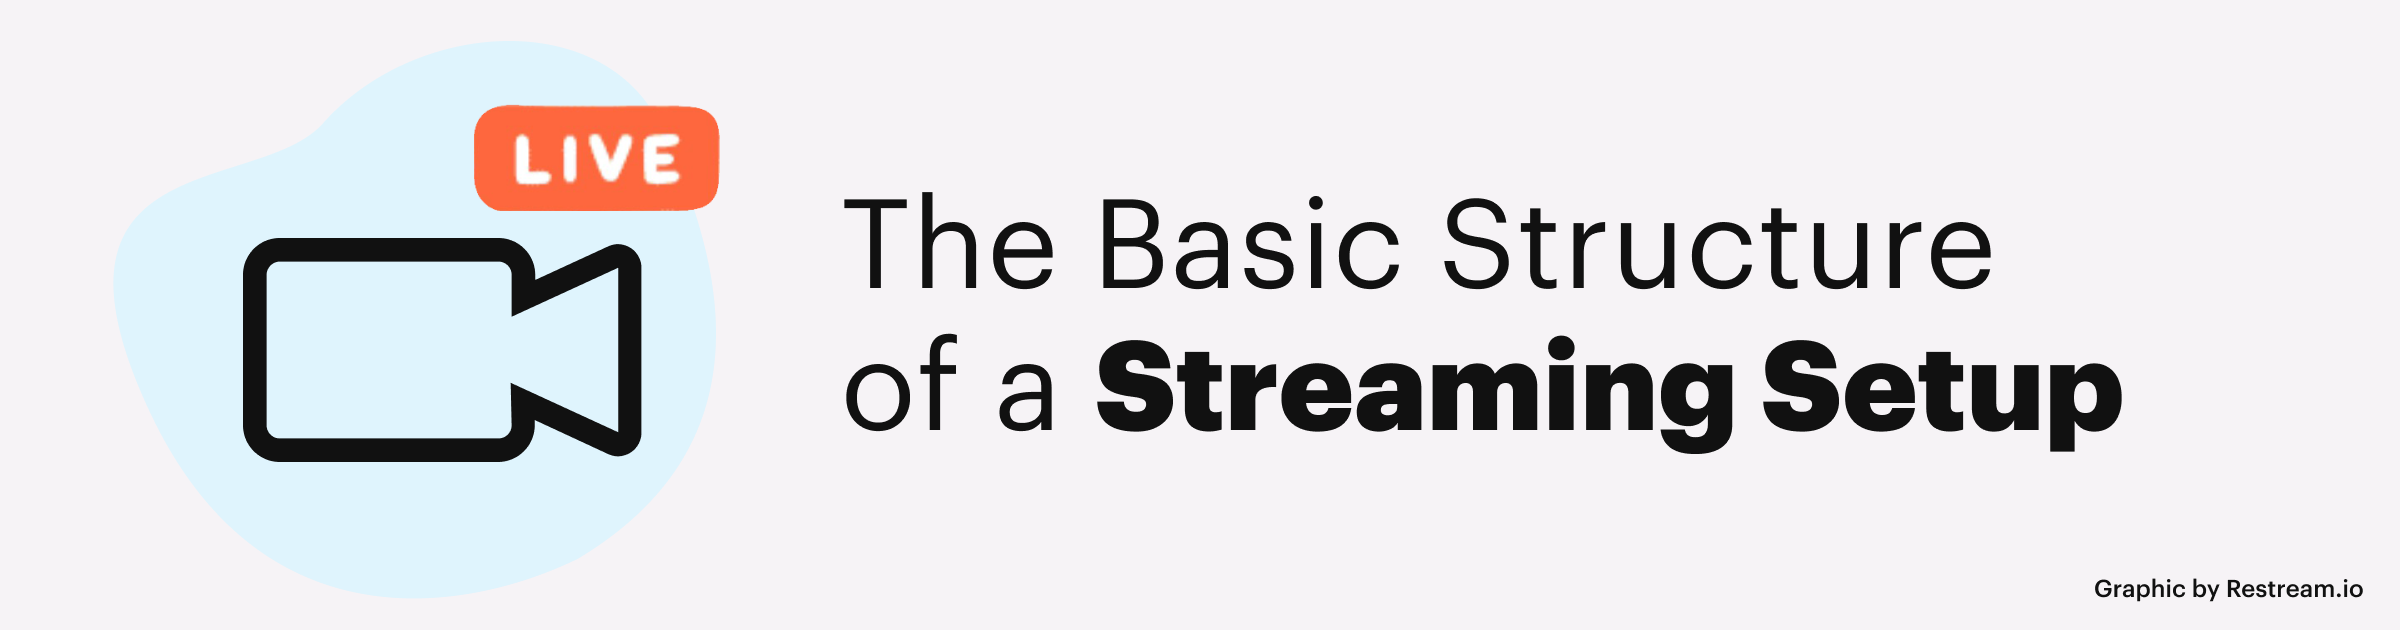 The basic structure of a streaming setup